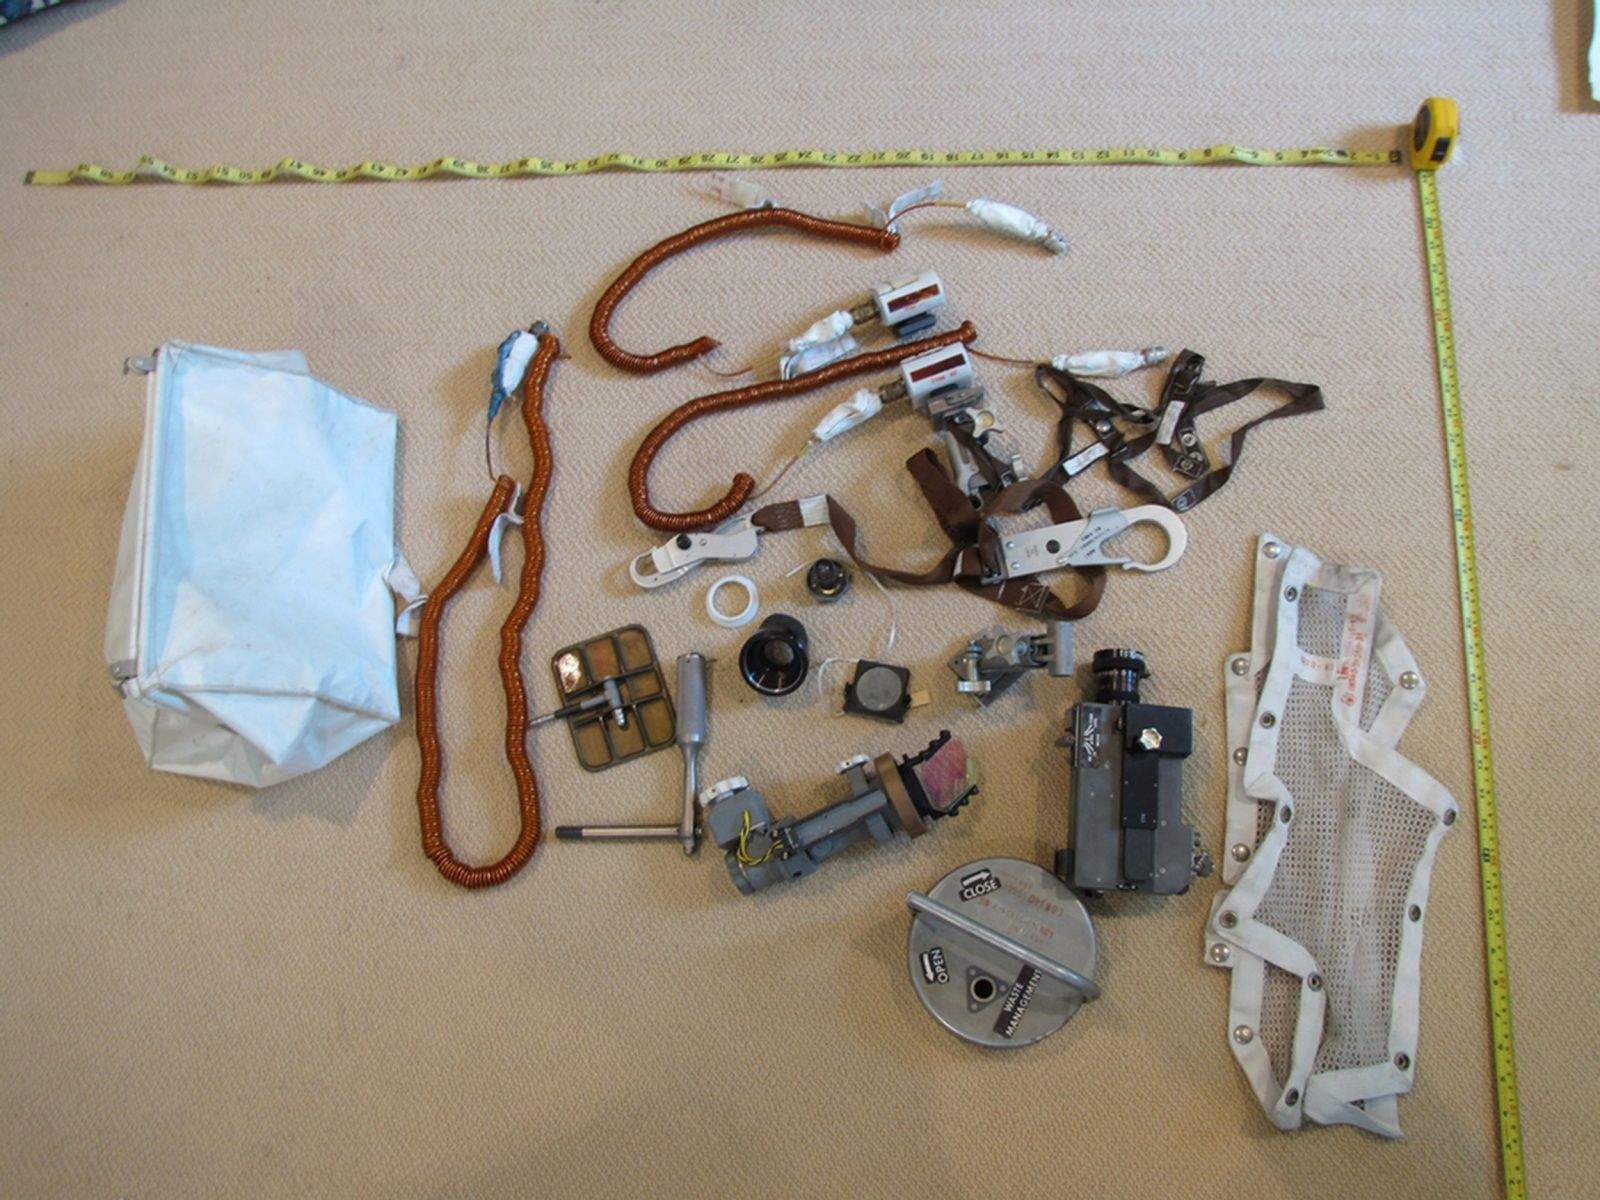 A bag of forgotten moon mission artifacts was found in a closet in Neil Armstrong's home. Carol Armstrong photo: Smithsonian National Air and Space Museum